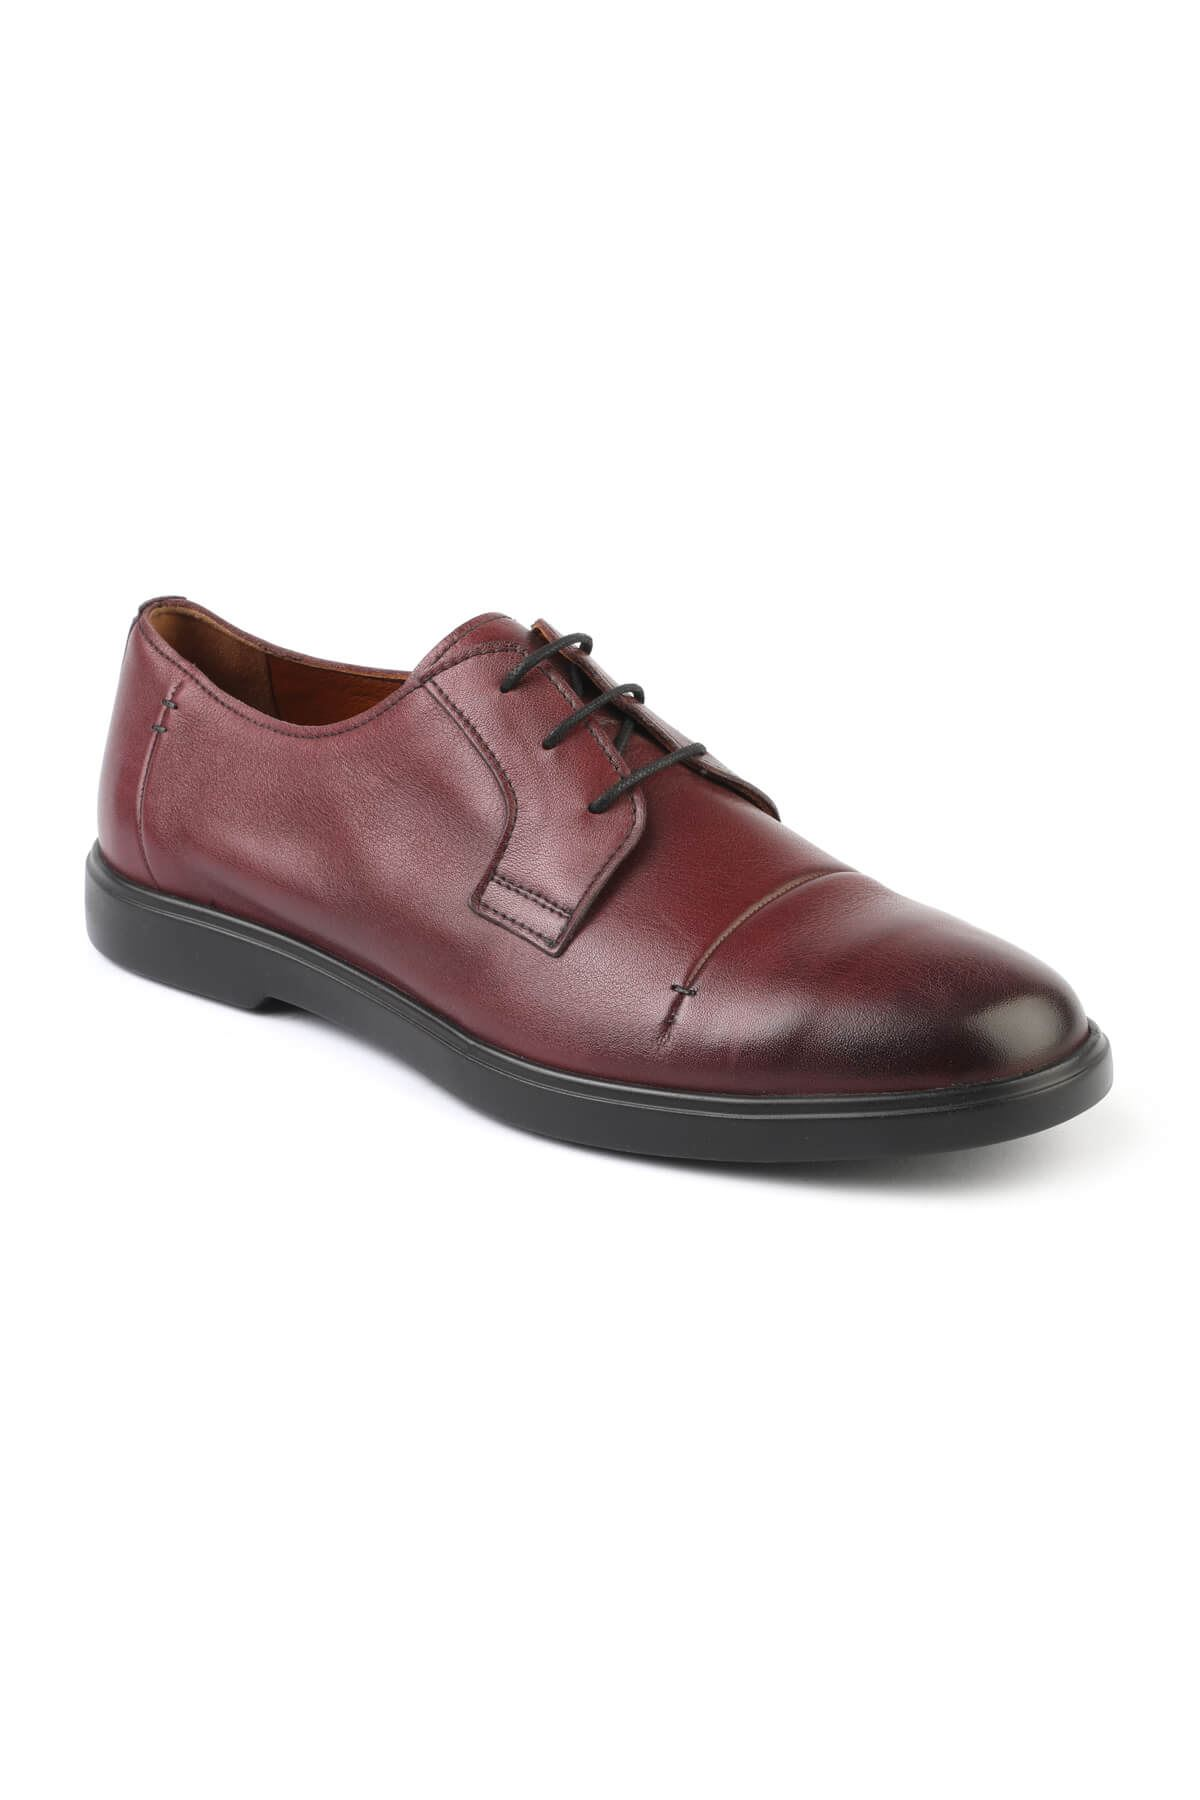 Libero T1054 Claret Red Casual Shoes